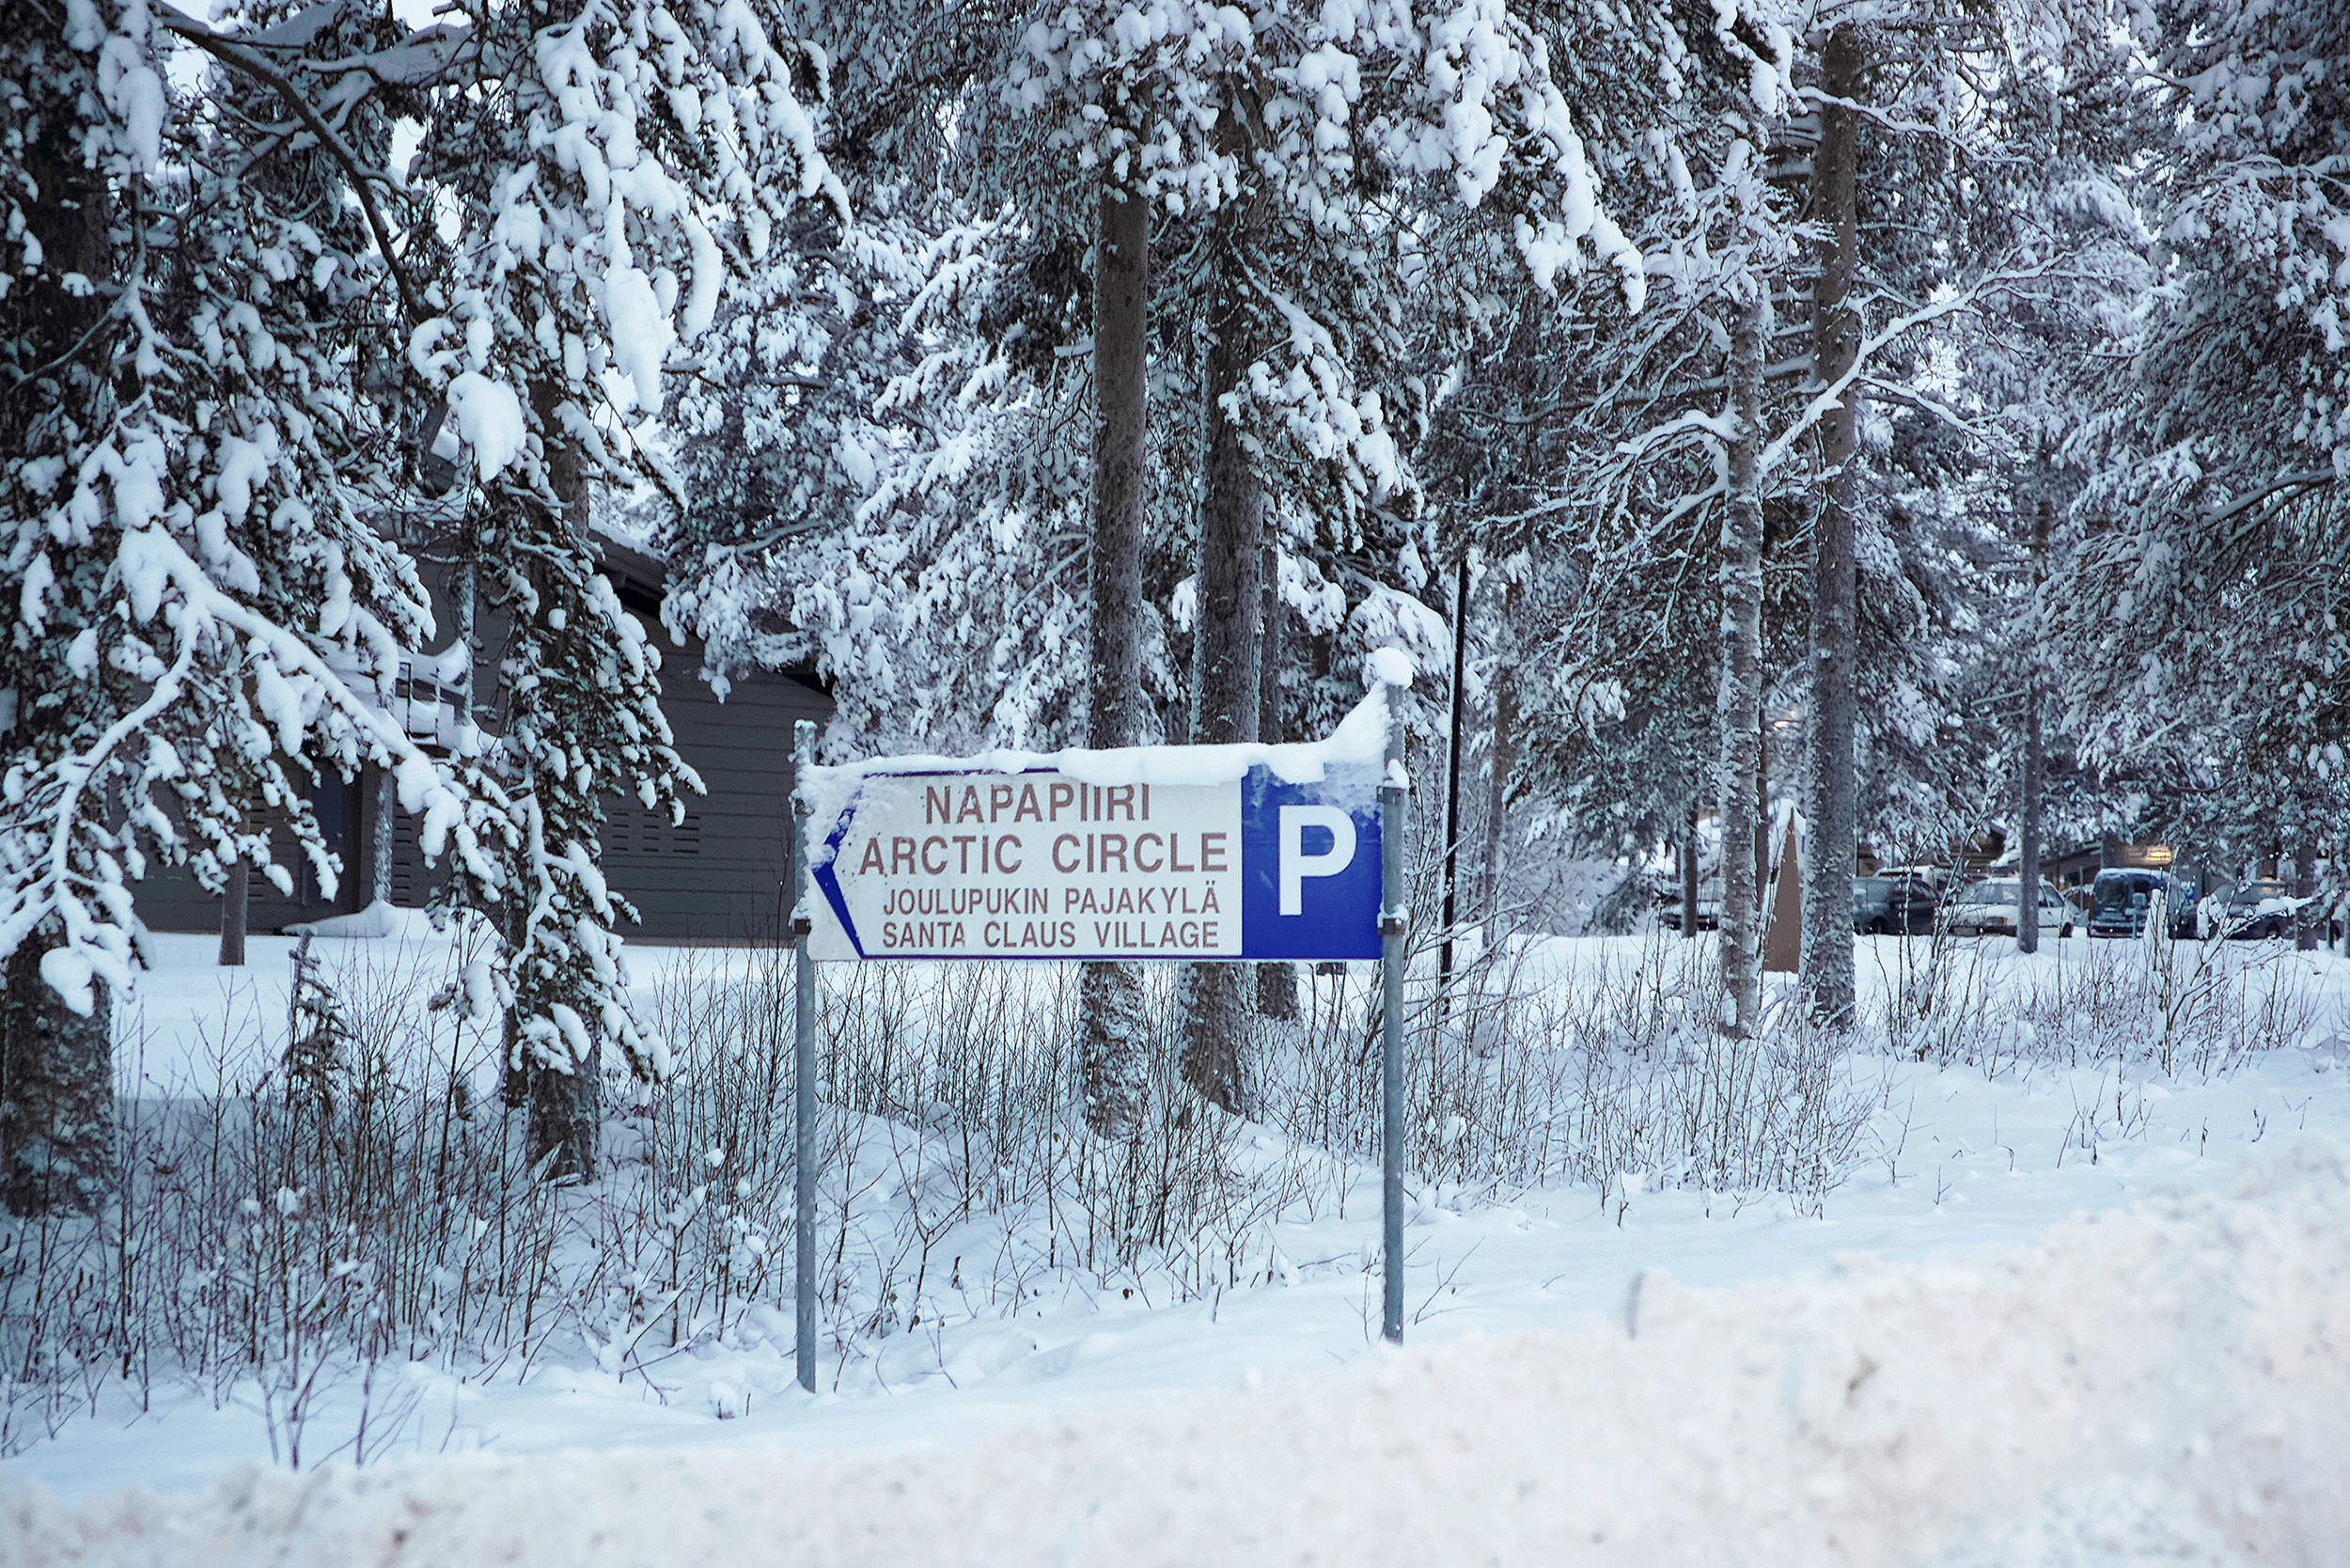 Rovaniemi, Finland - January 3, 2013: Sign of Santa Claus village in Rovaniemi that is in Lapland, in Finland on the Arctic pole circle